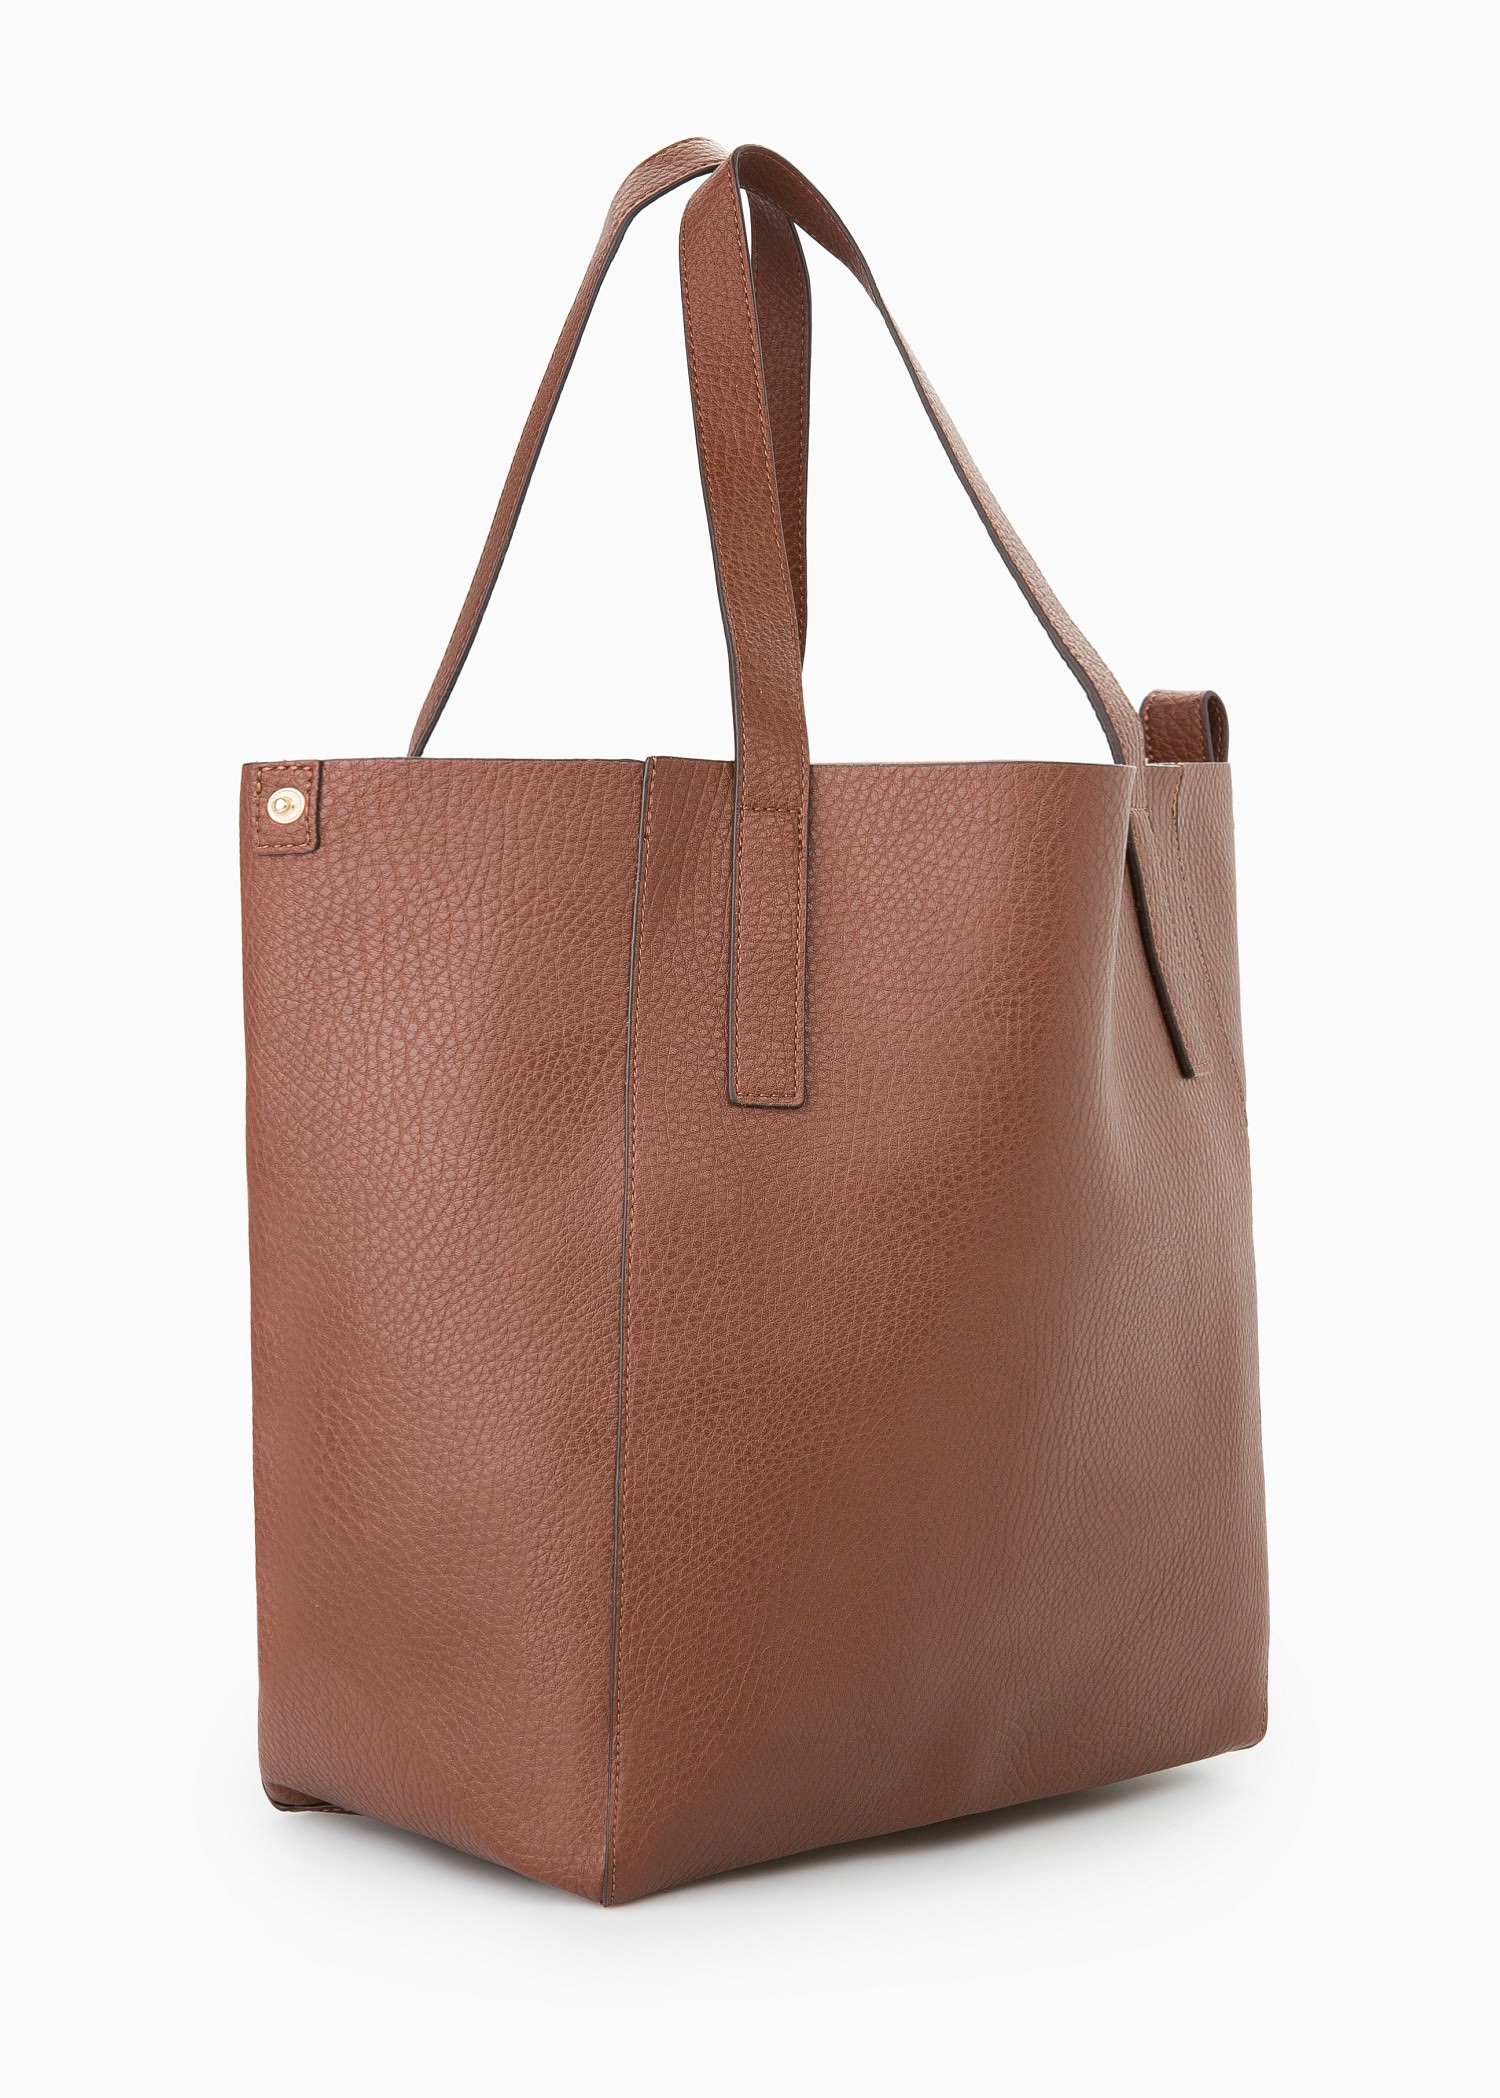 Lyst - Mango Faux-Leather Shopper Bag in Brown